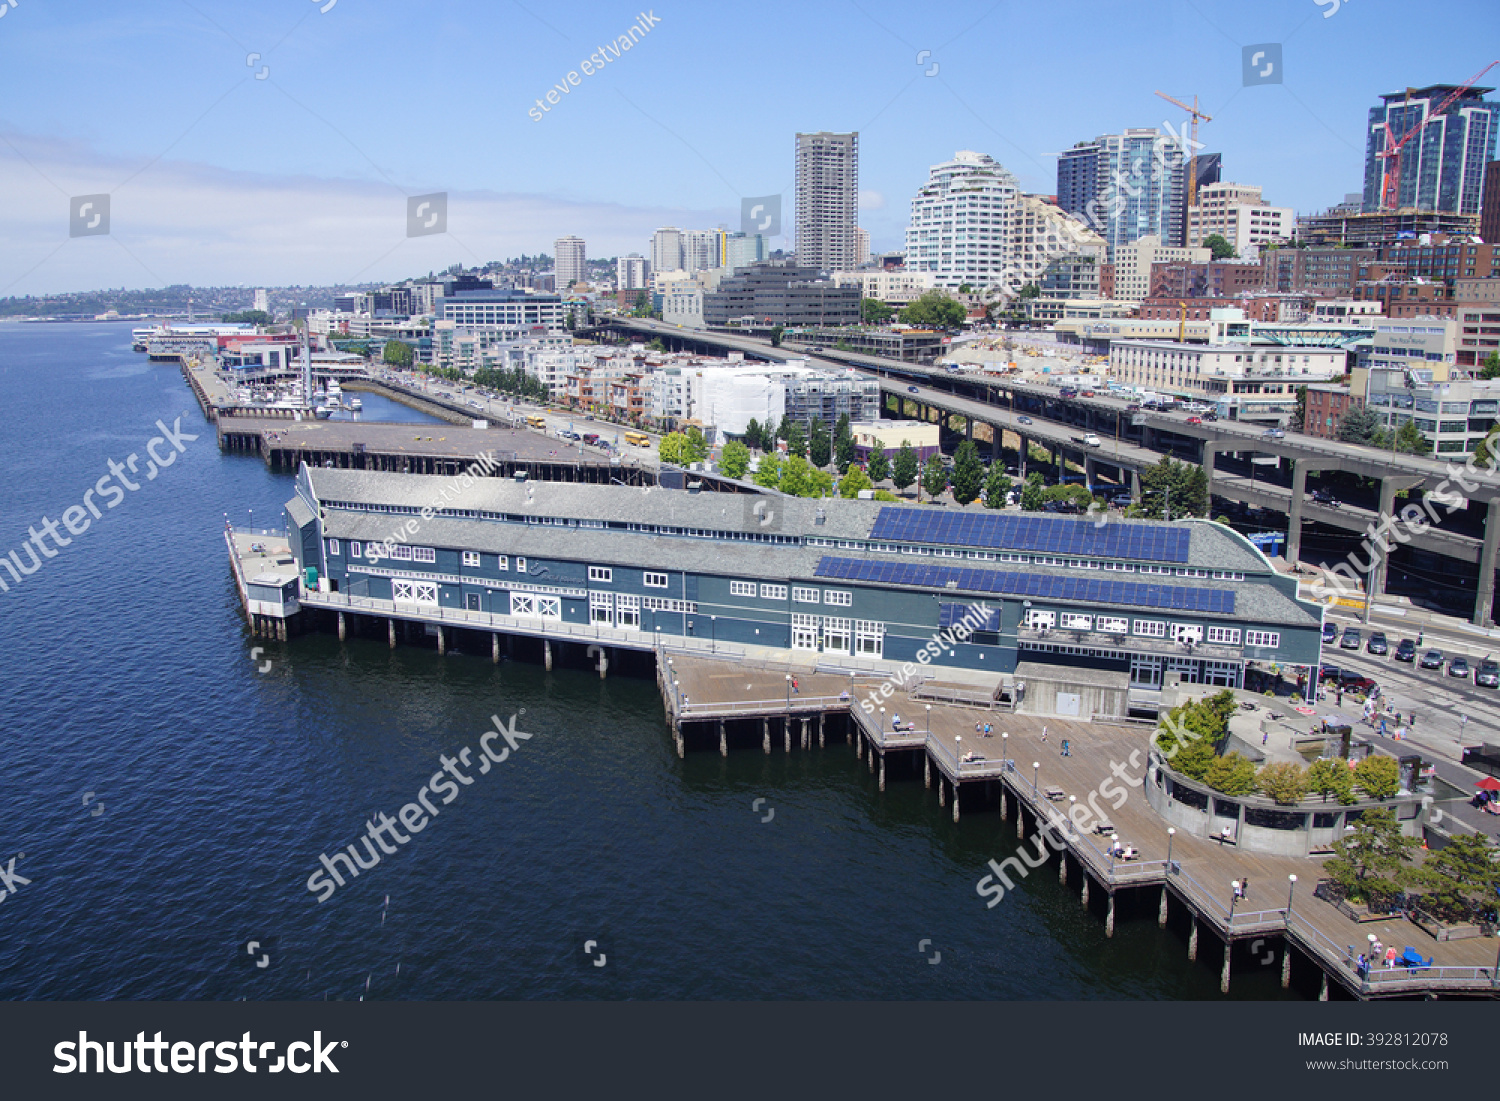 SEATTLE - JUL 20, 2015 - 